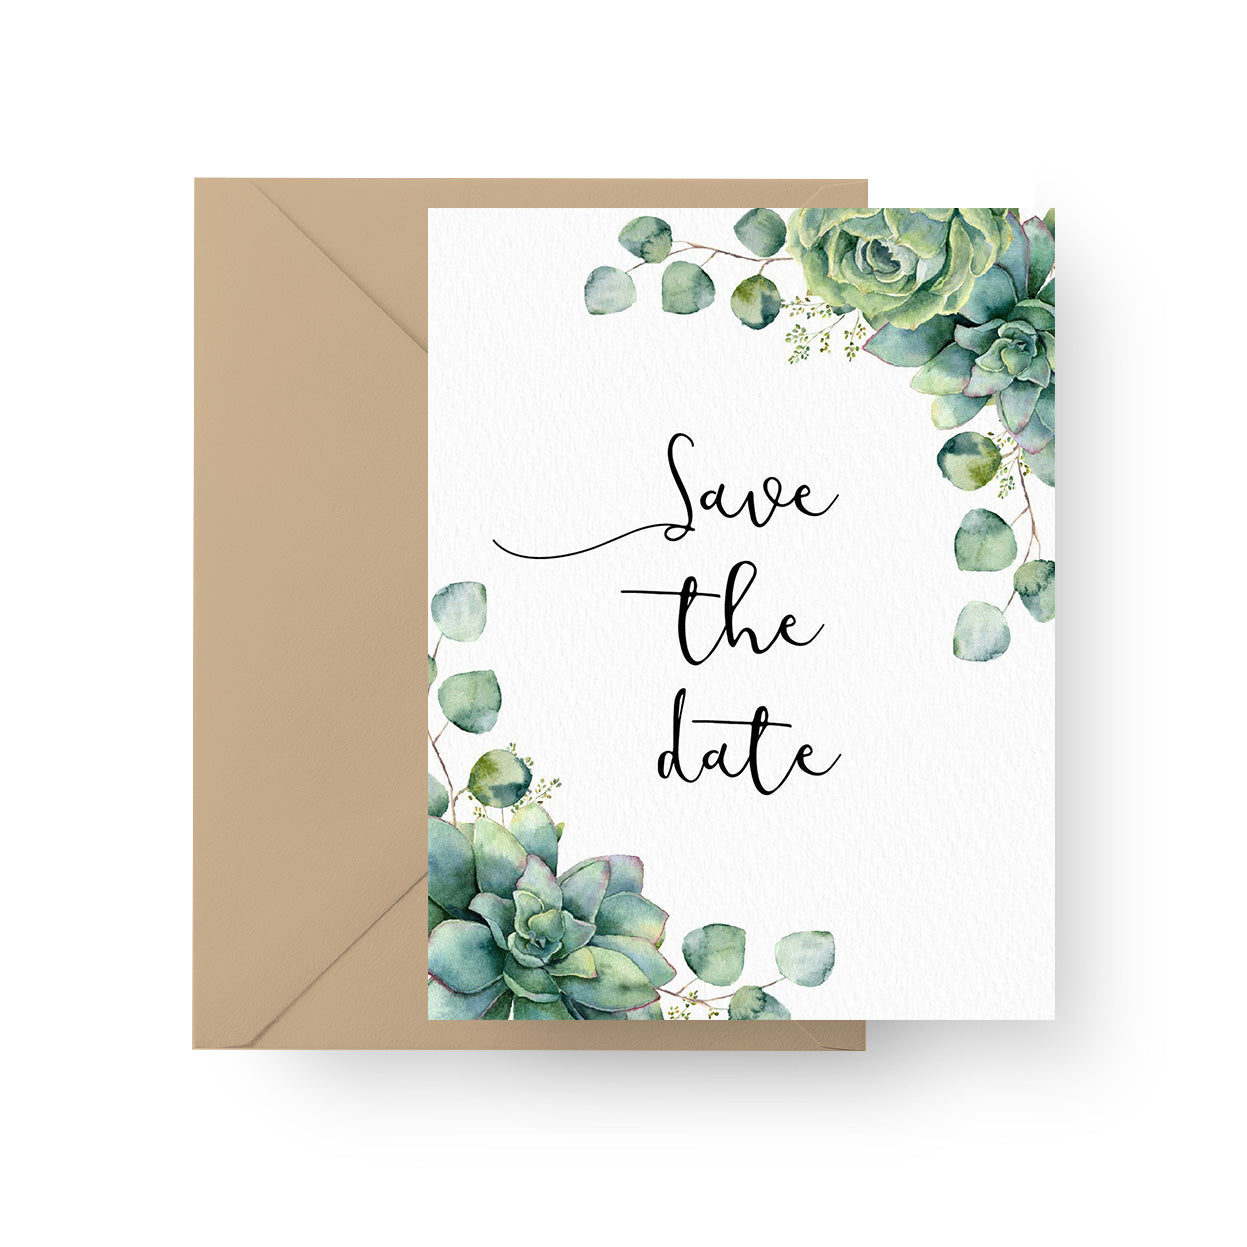 Save The Date Card for sale